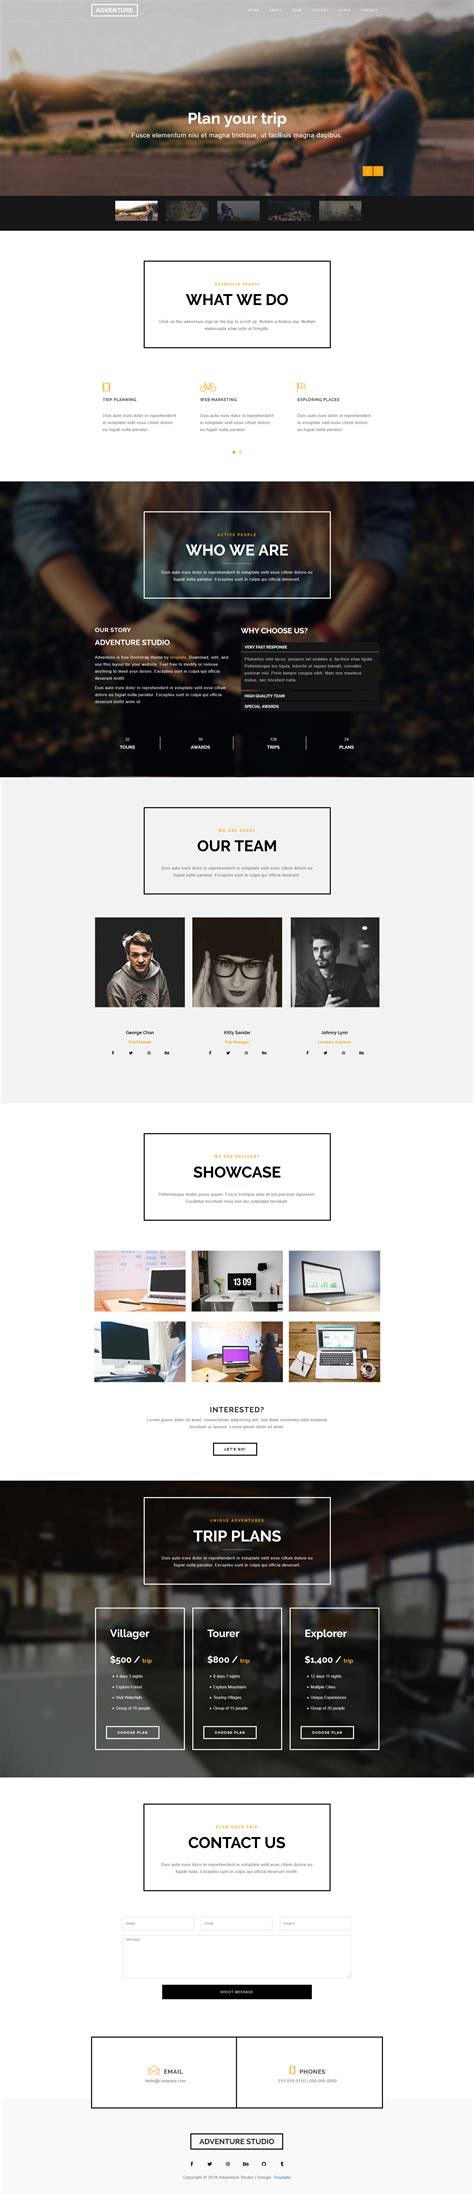 Adventure Bootstrap Theme Free Html Css  Ee  Templates Ee